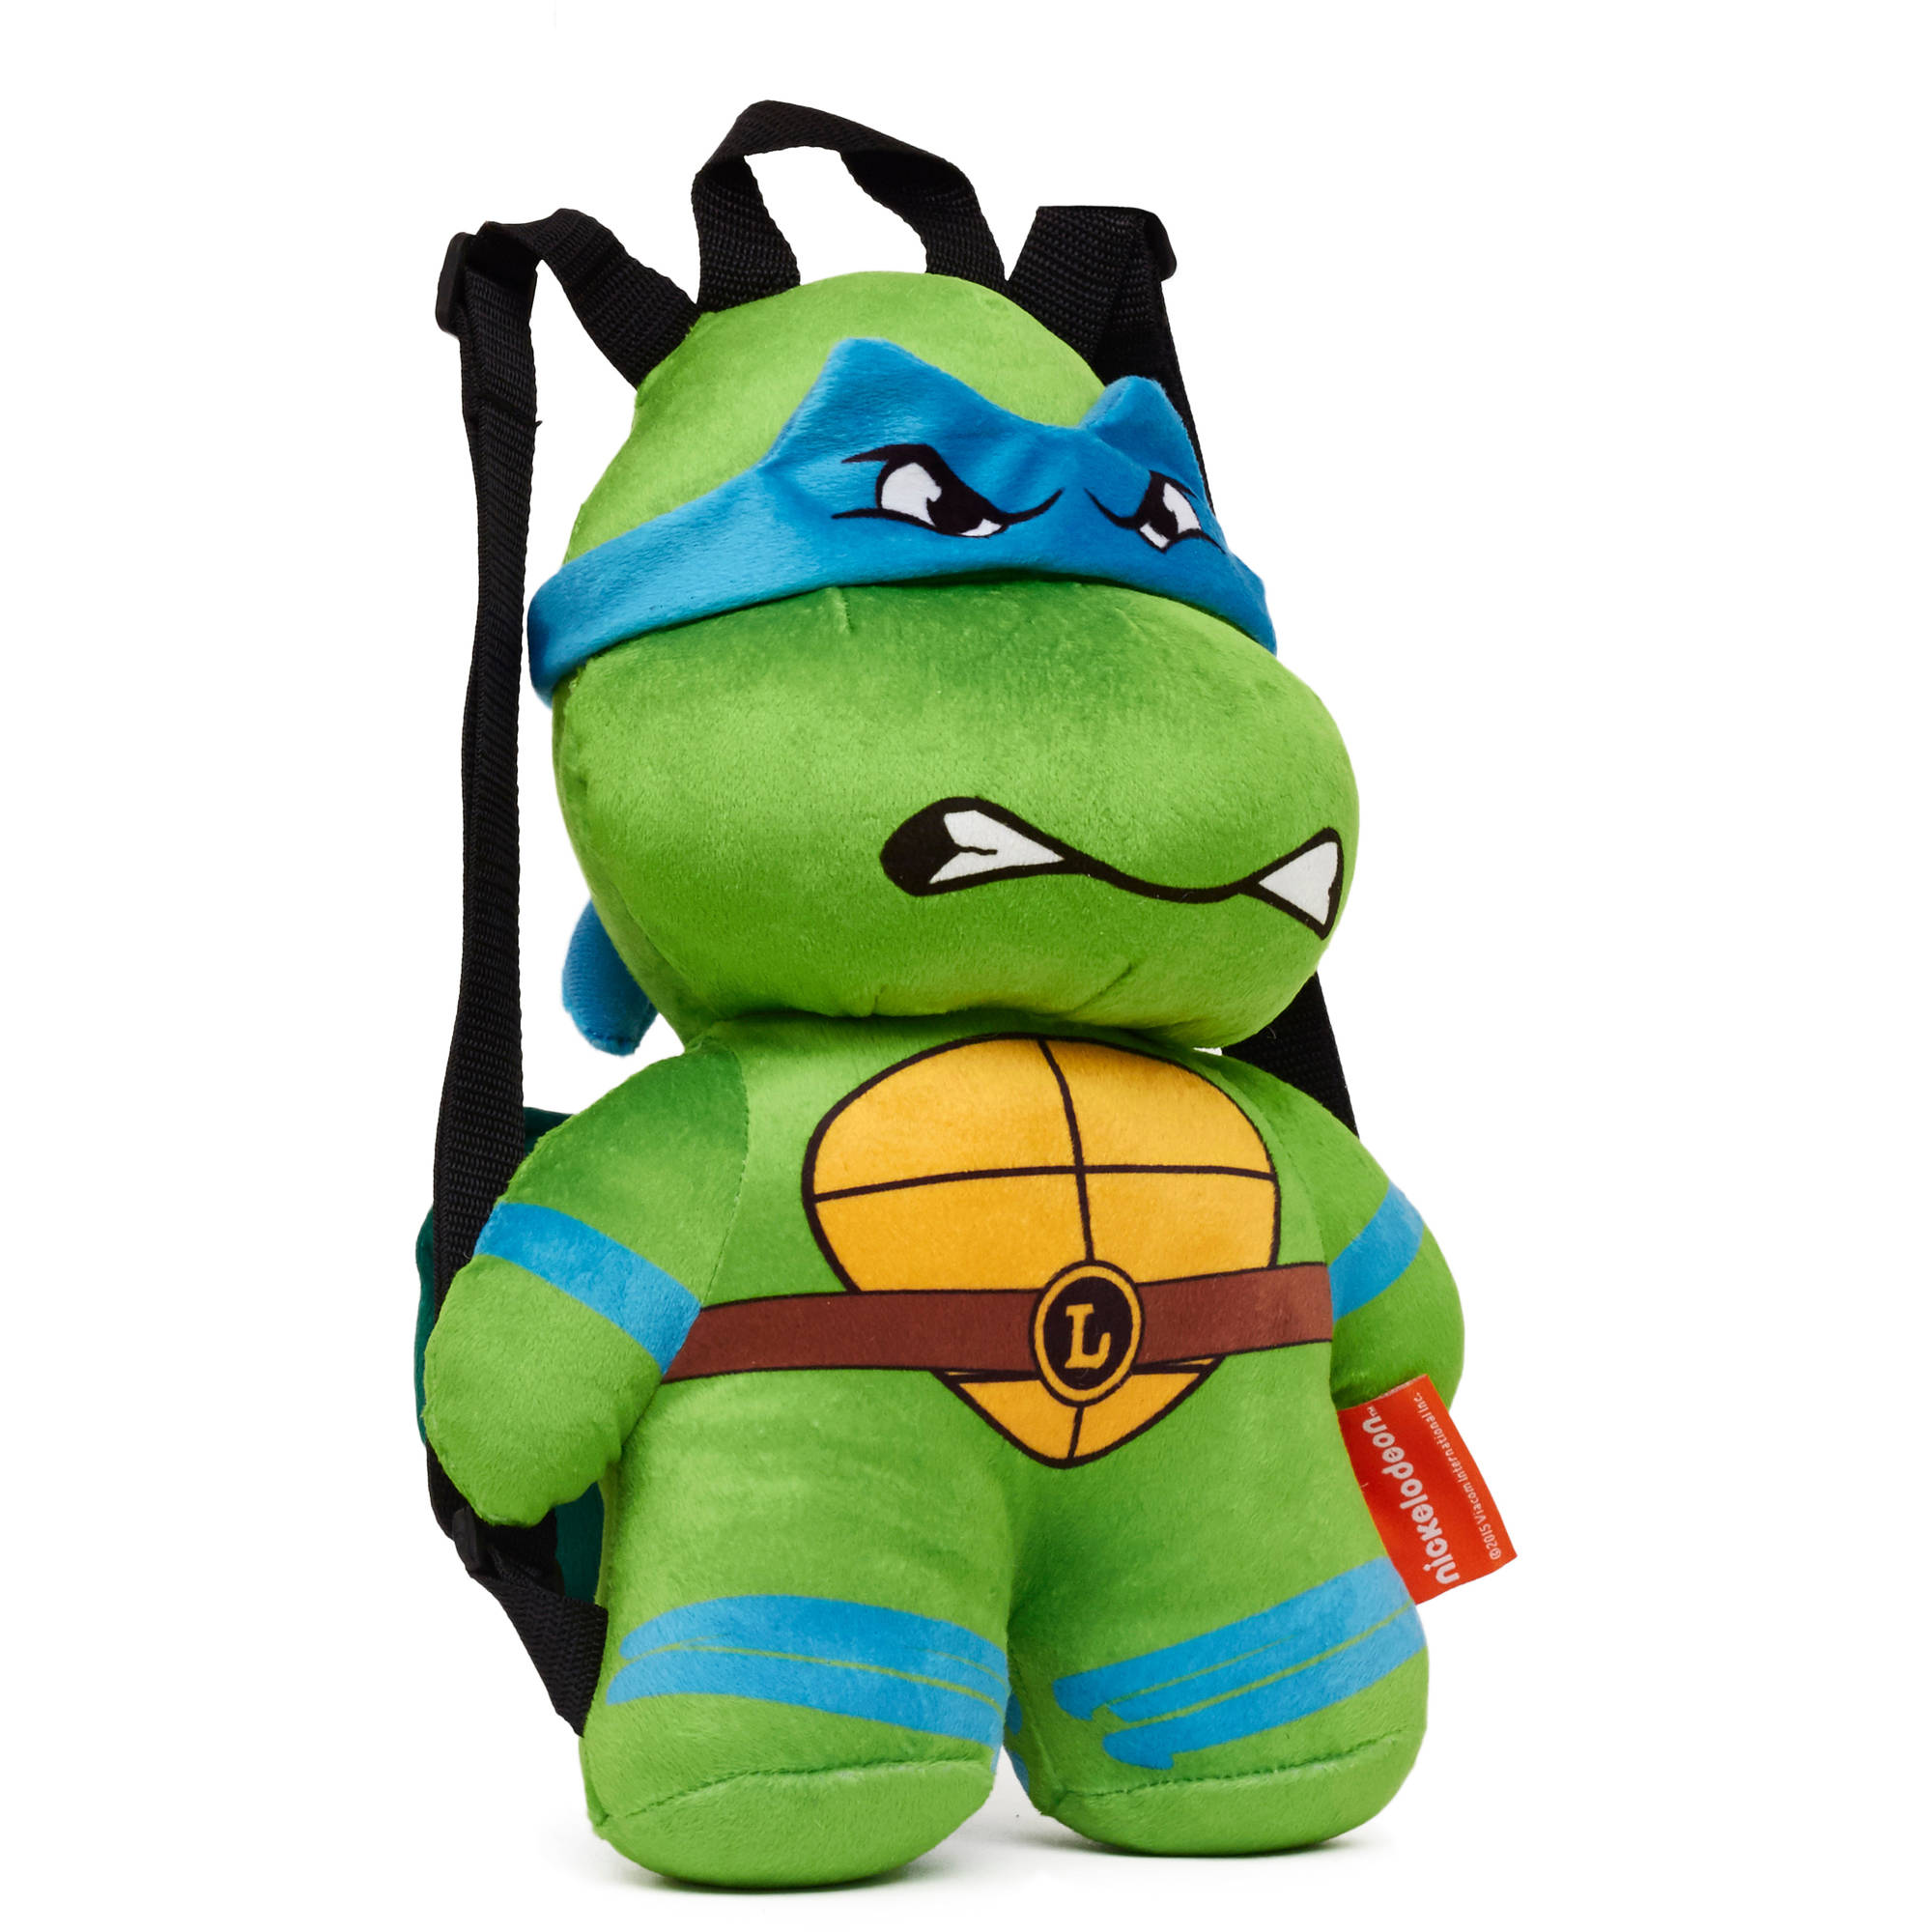 "Teenage Mutant Ninja Turtles ""Leonardo"" Plush Backpack"